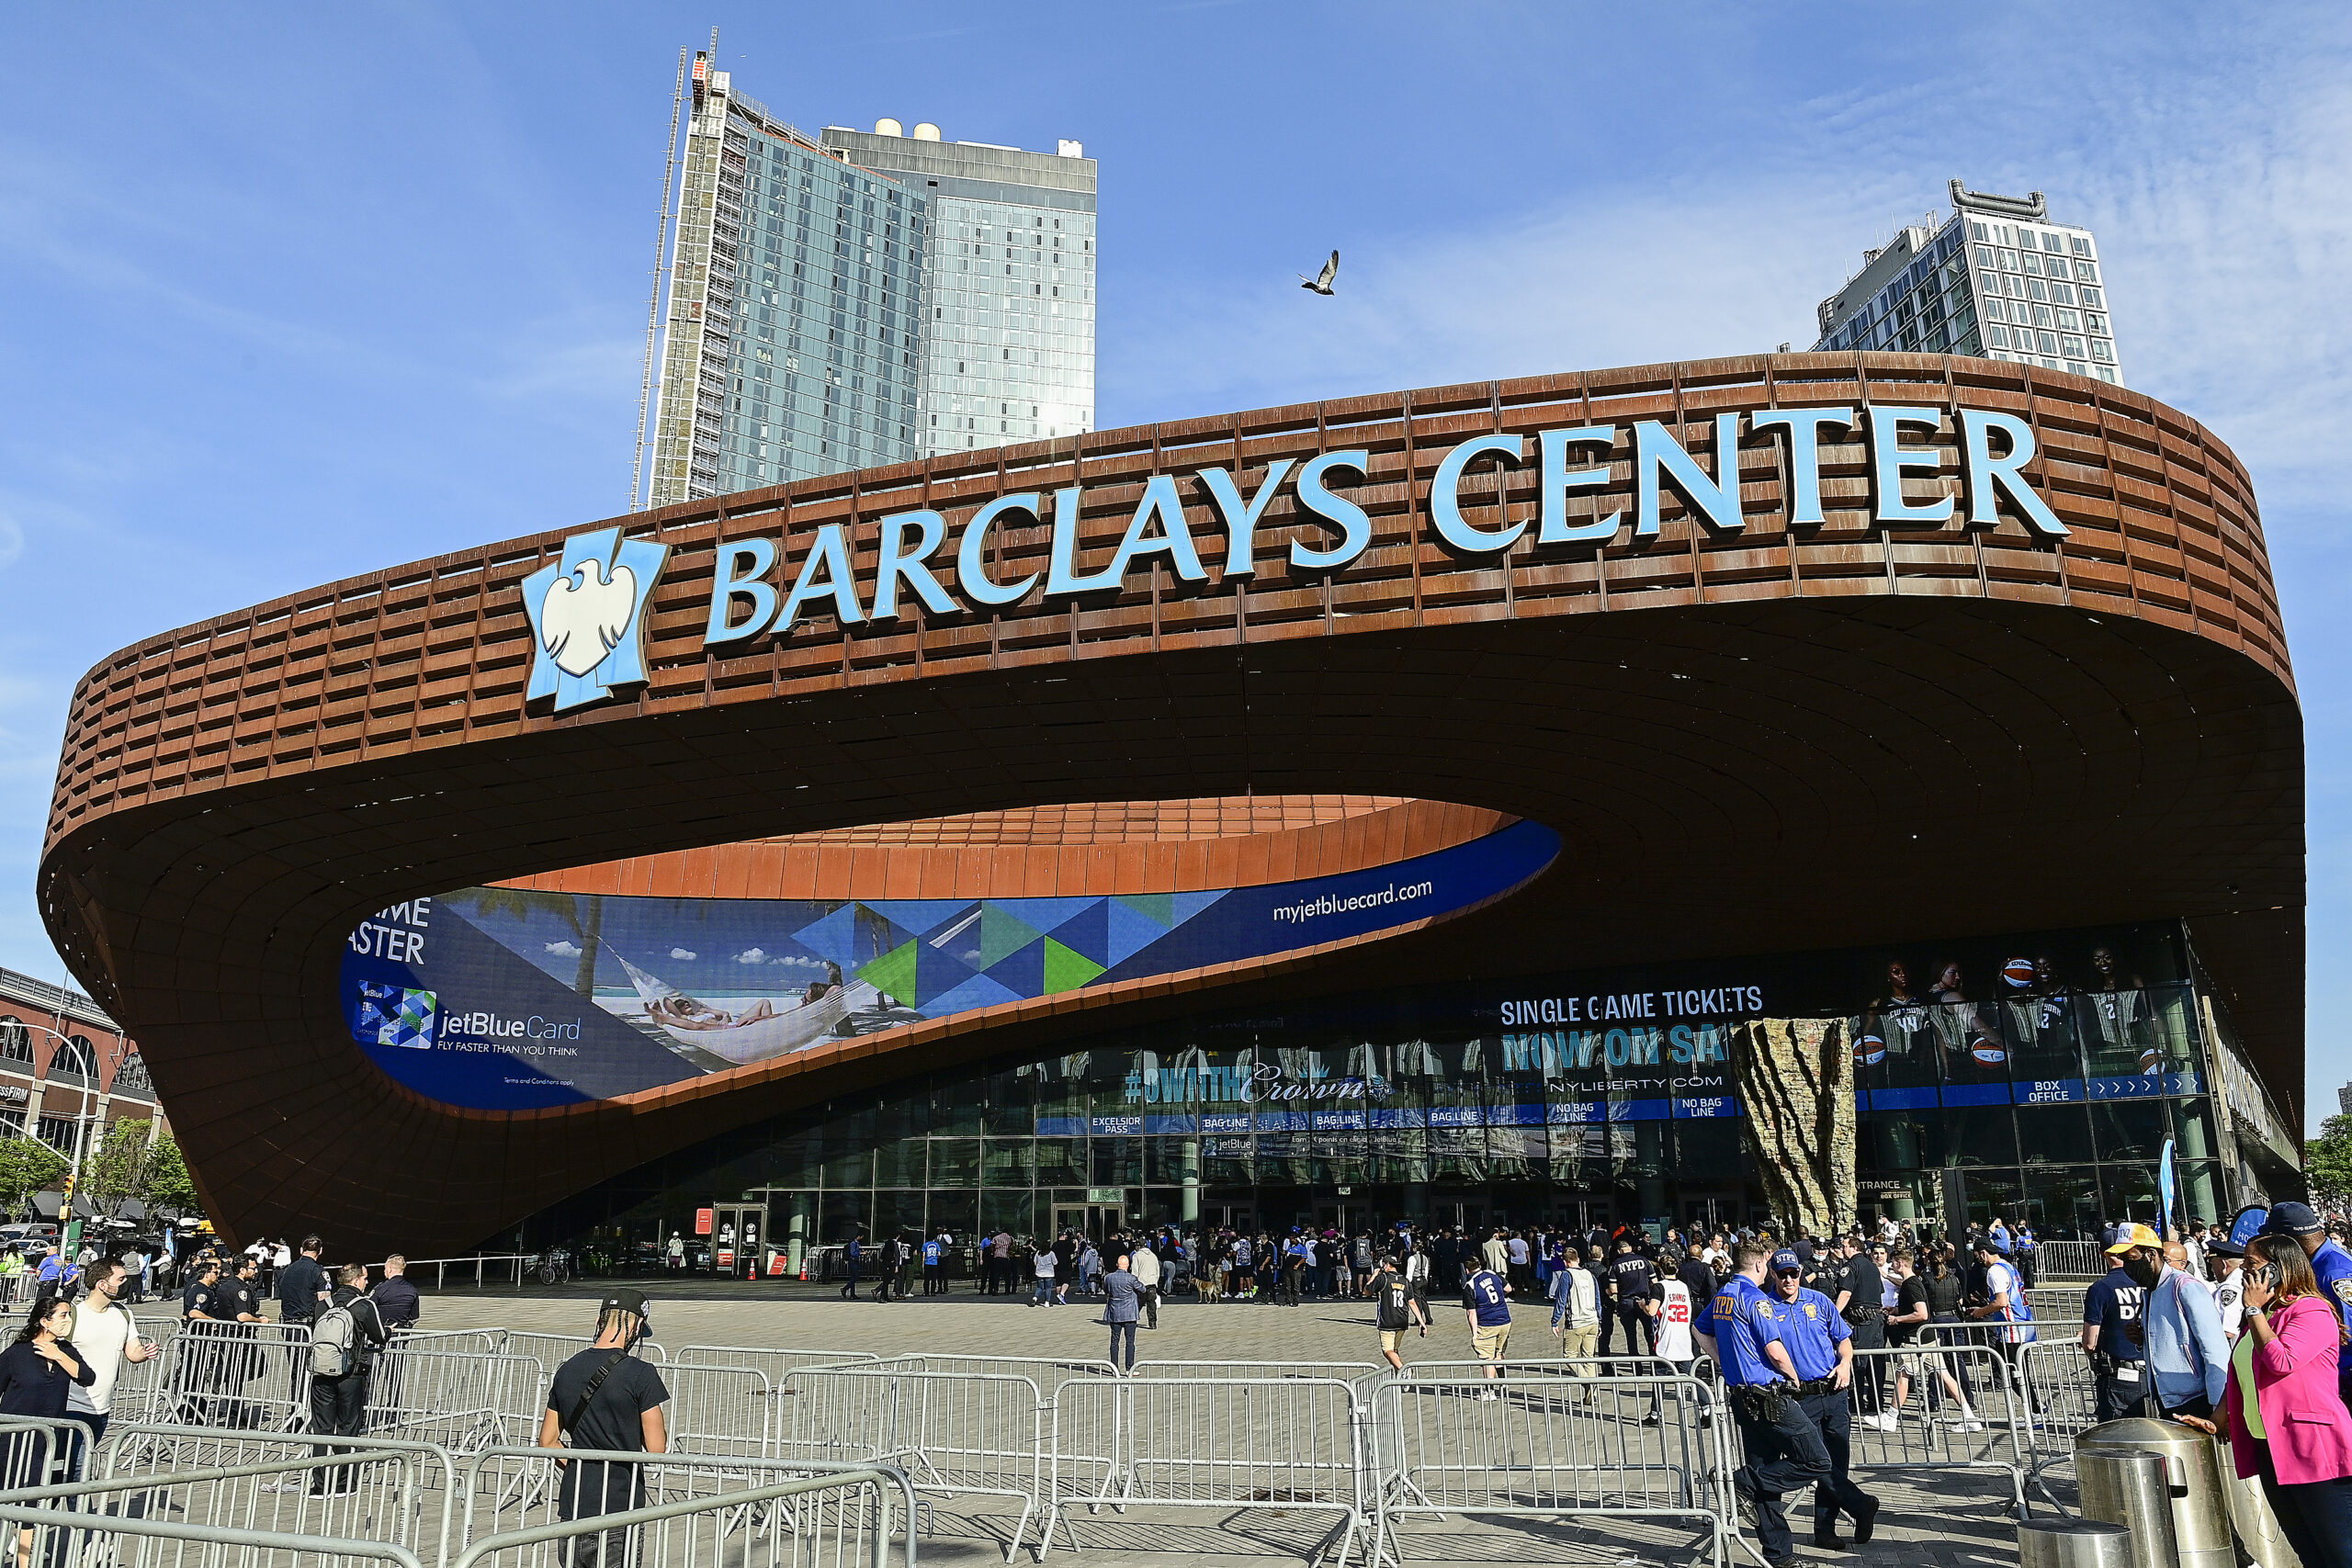 Barclays Center briefly closes as demonstrators protest New York's vaccine mandate outside